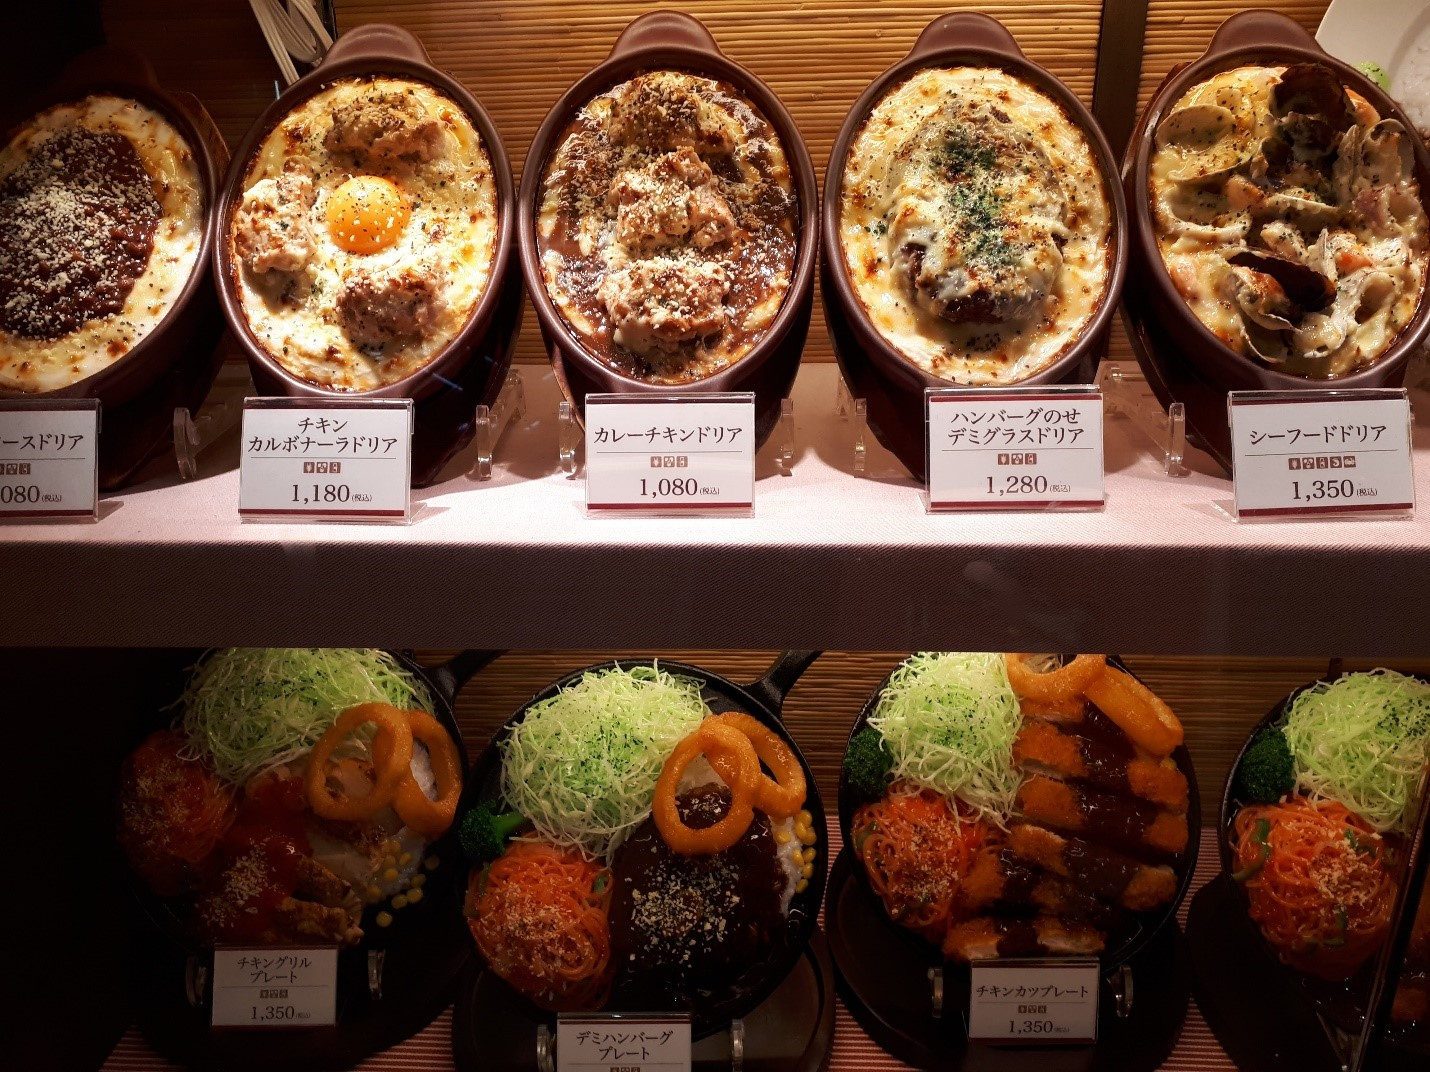 Wax food models outside restaurants displaying the dishes served inside. Photo: Anubha Garg